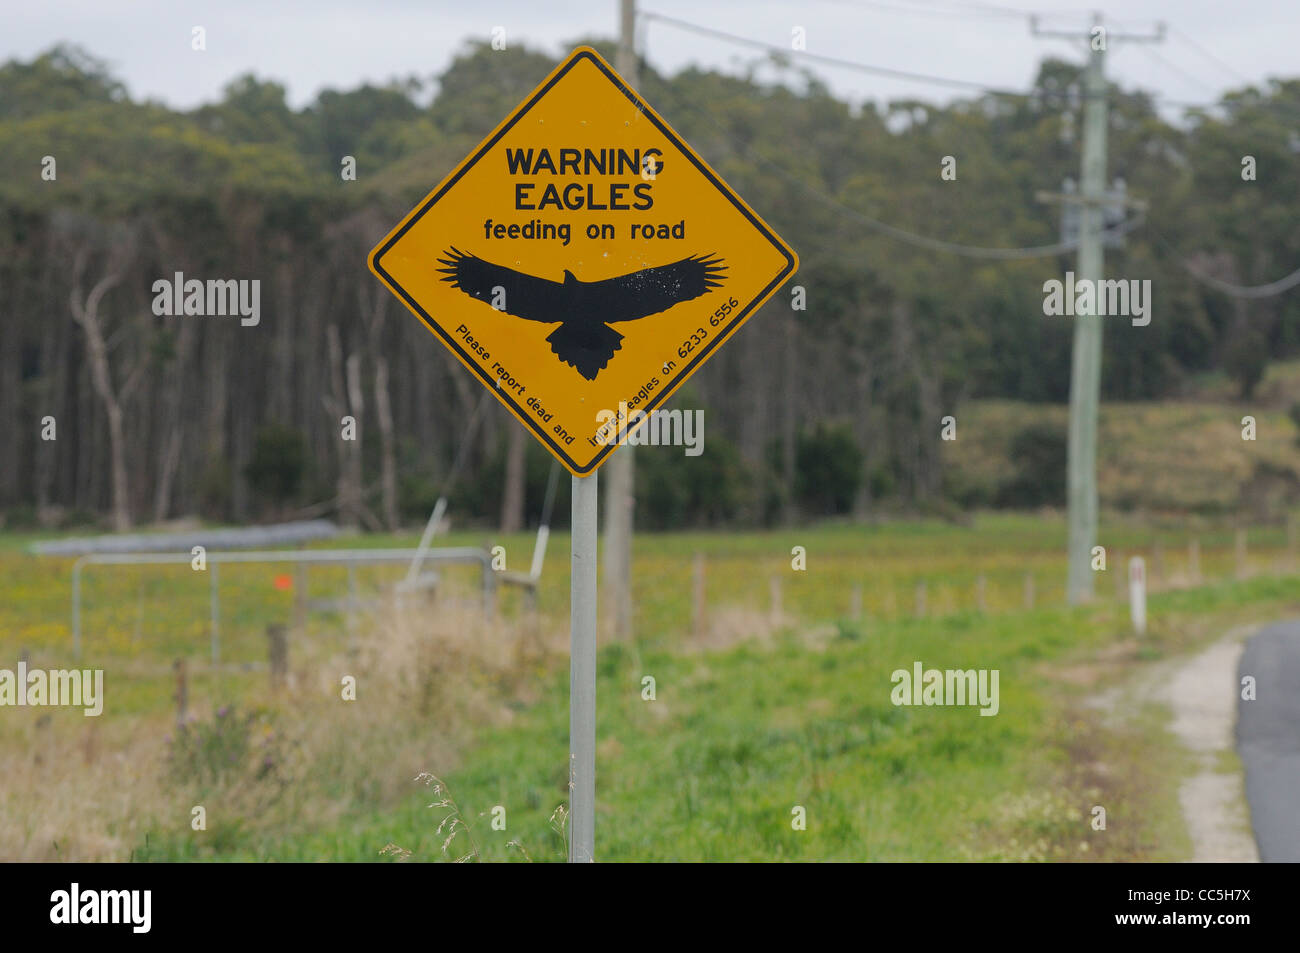 Wedge-tailed Eagle Aquila audax Road warning sign Photographed in Tasmania, Australia - Stock Image